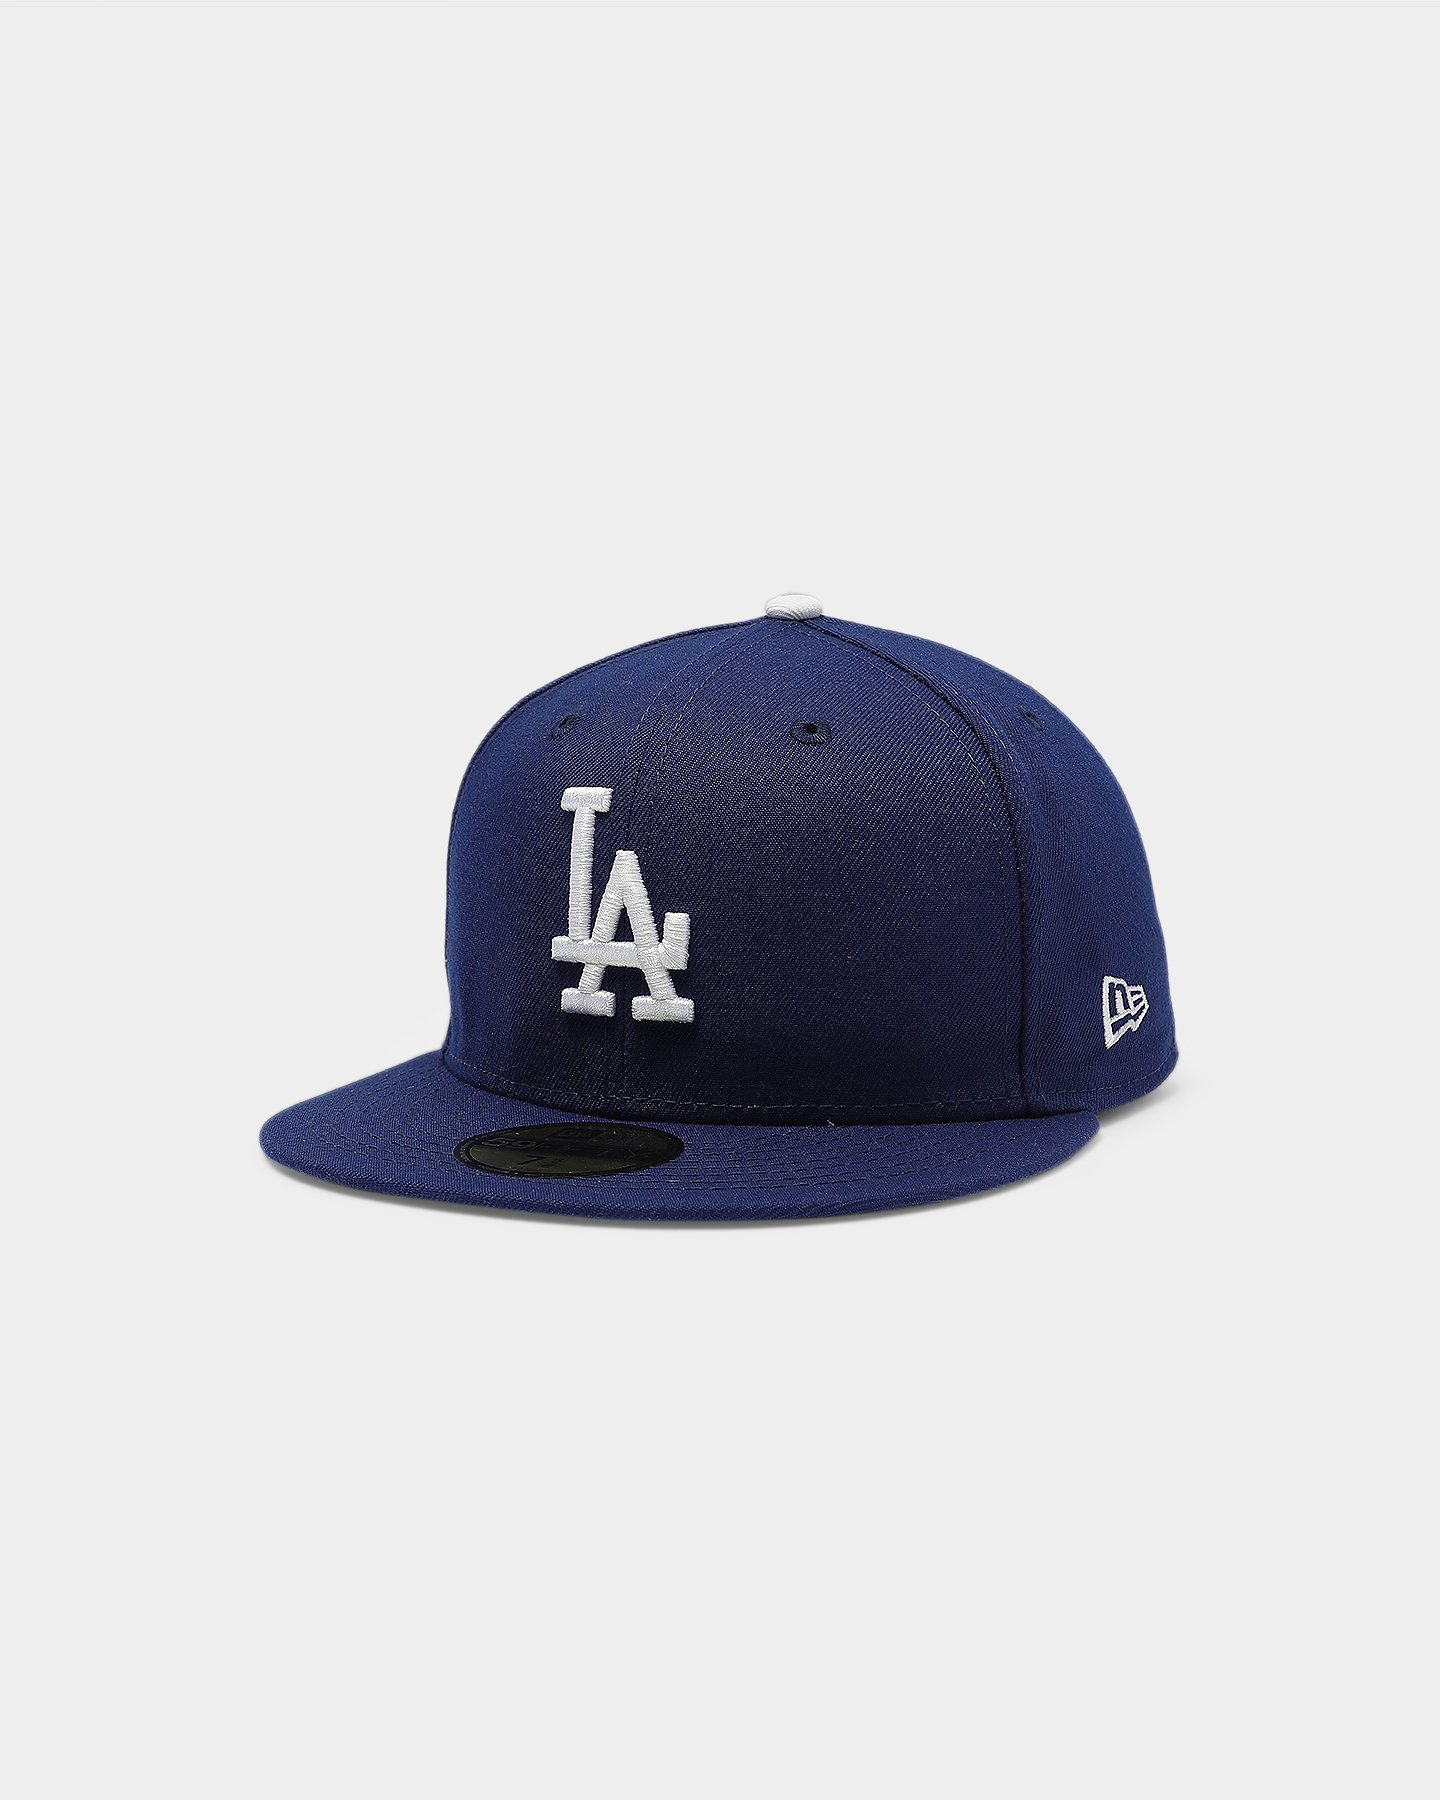 """New Era 59Fifty LA Dodgers Fitted Hat All Royal Blue//White /""""Dodgers/"""" Script"""